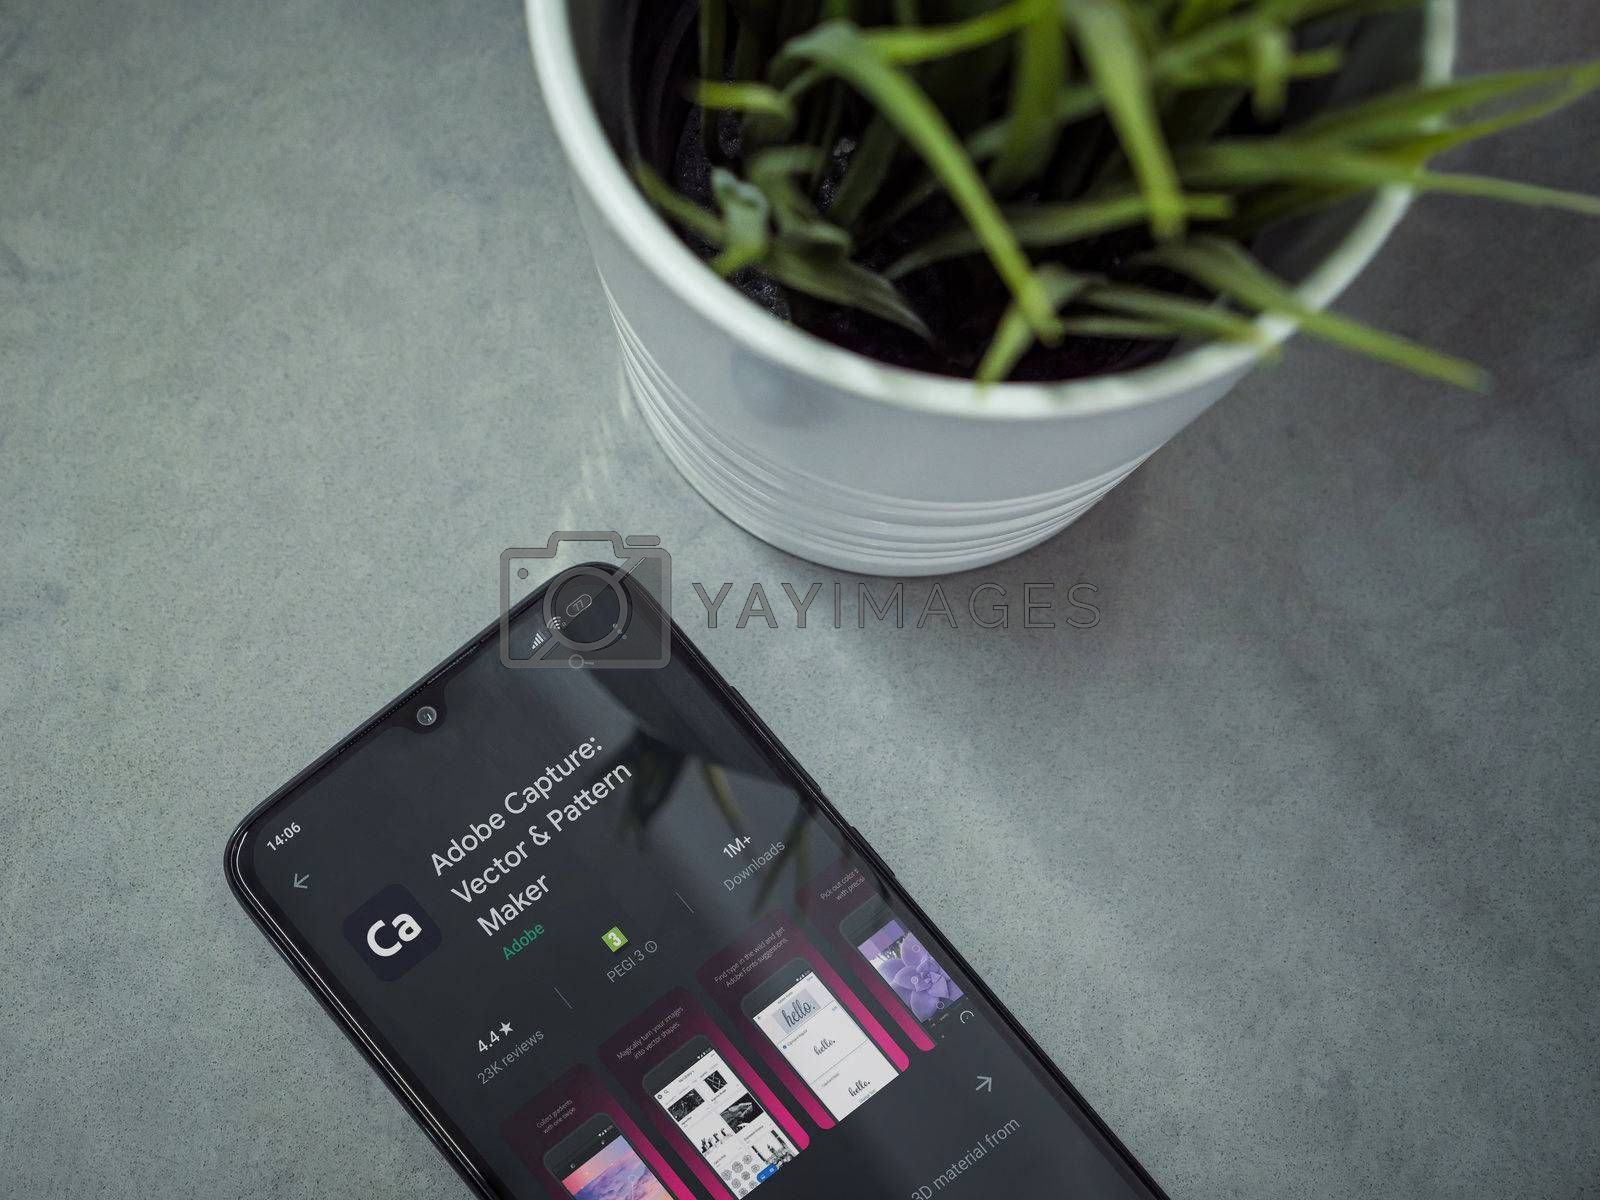 Lod, Israel - July 8, 2020: Modern minimalist office workspace with black mobile smartphone with Adobe Capture app play store page on a marble background. Close up top view flat lay.